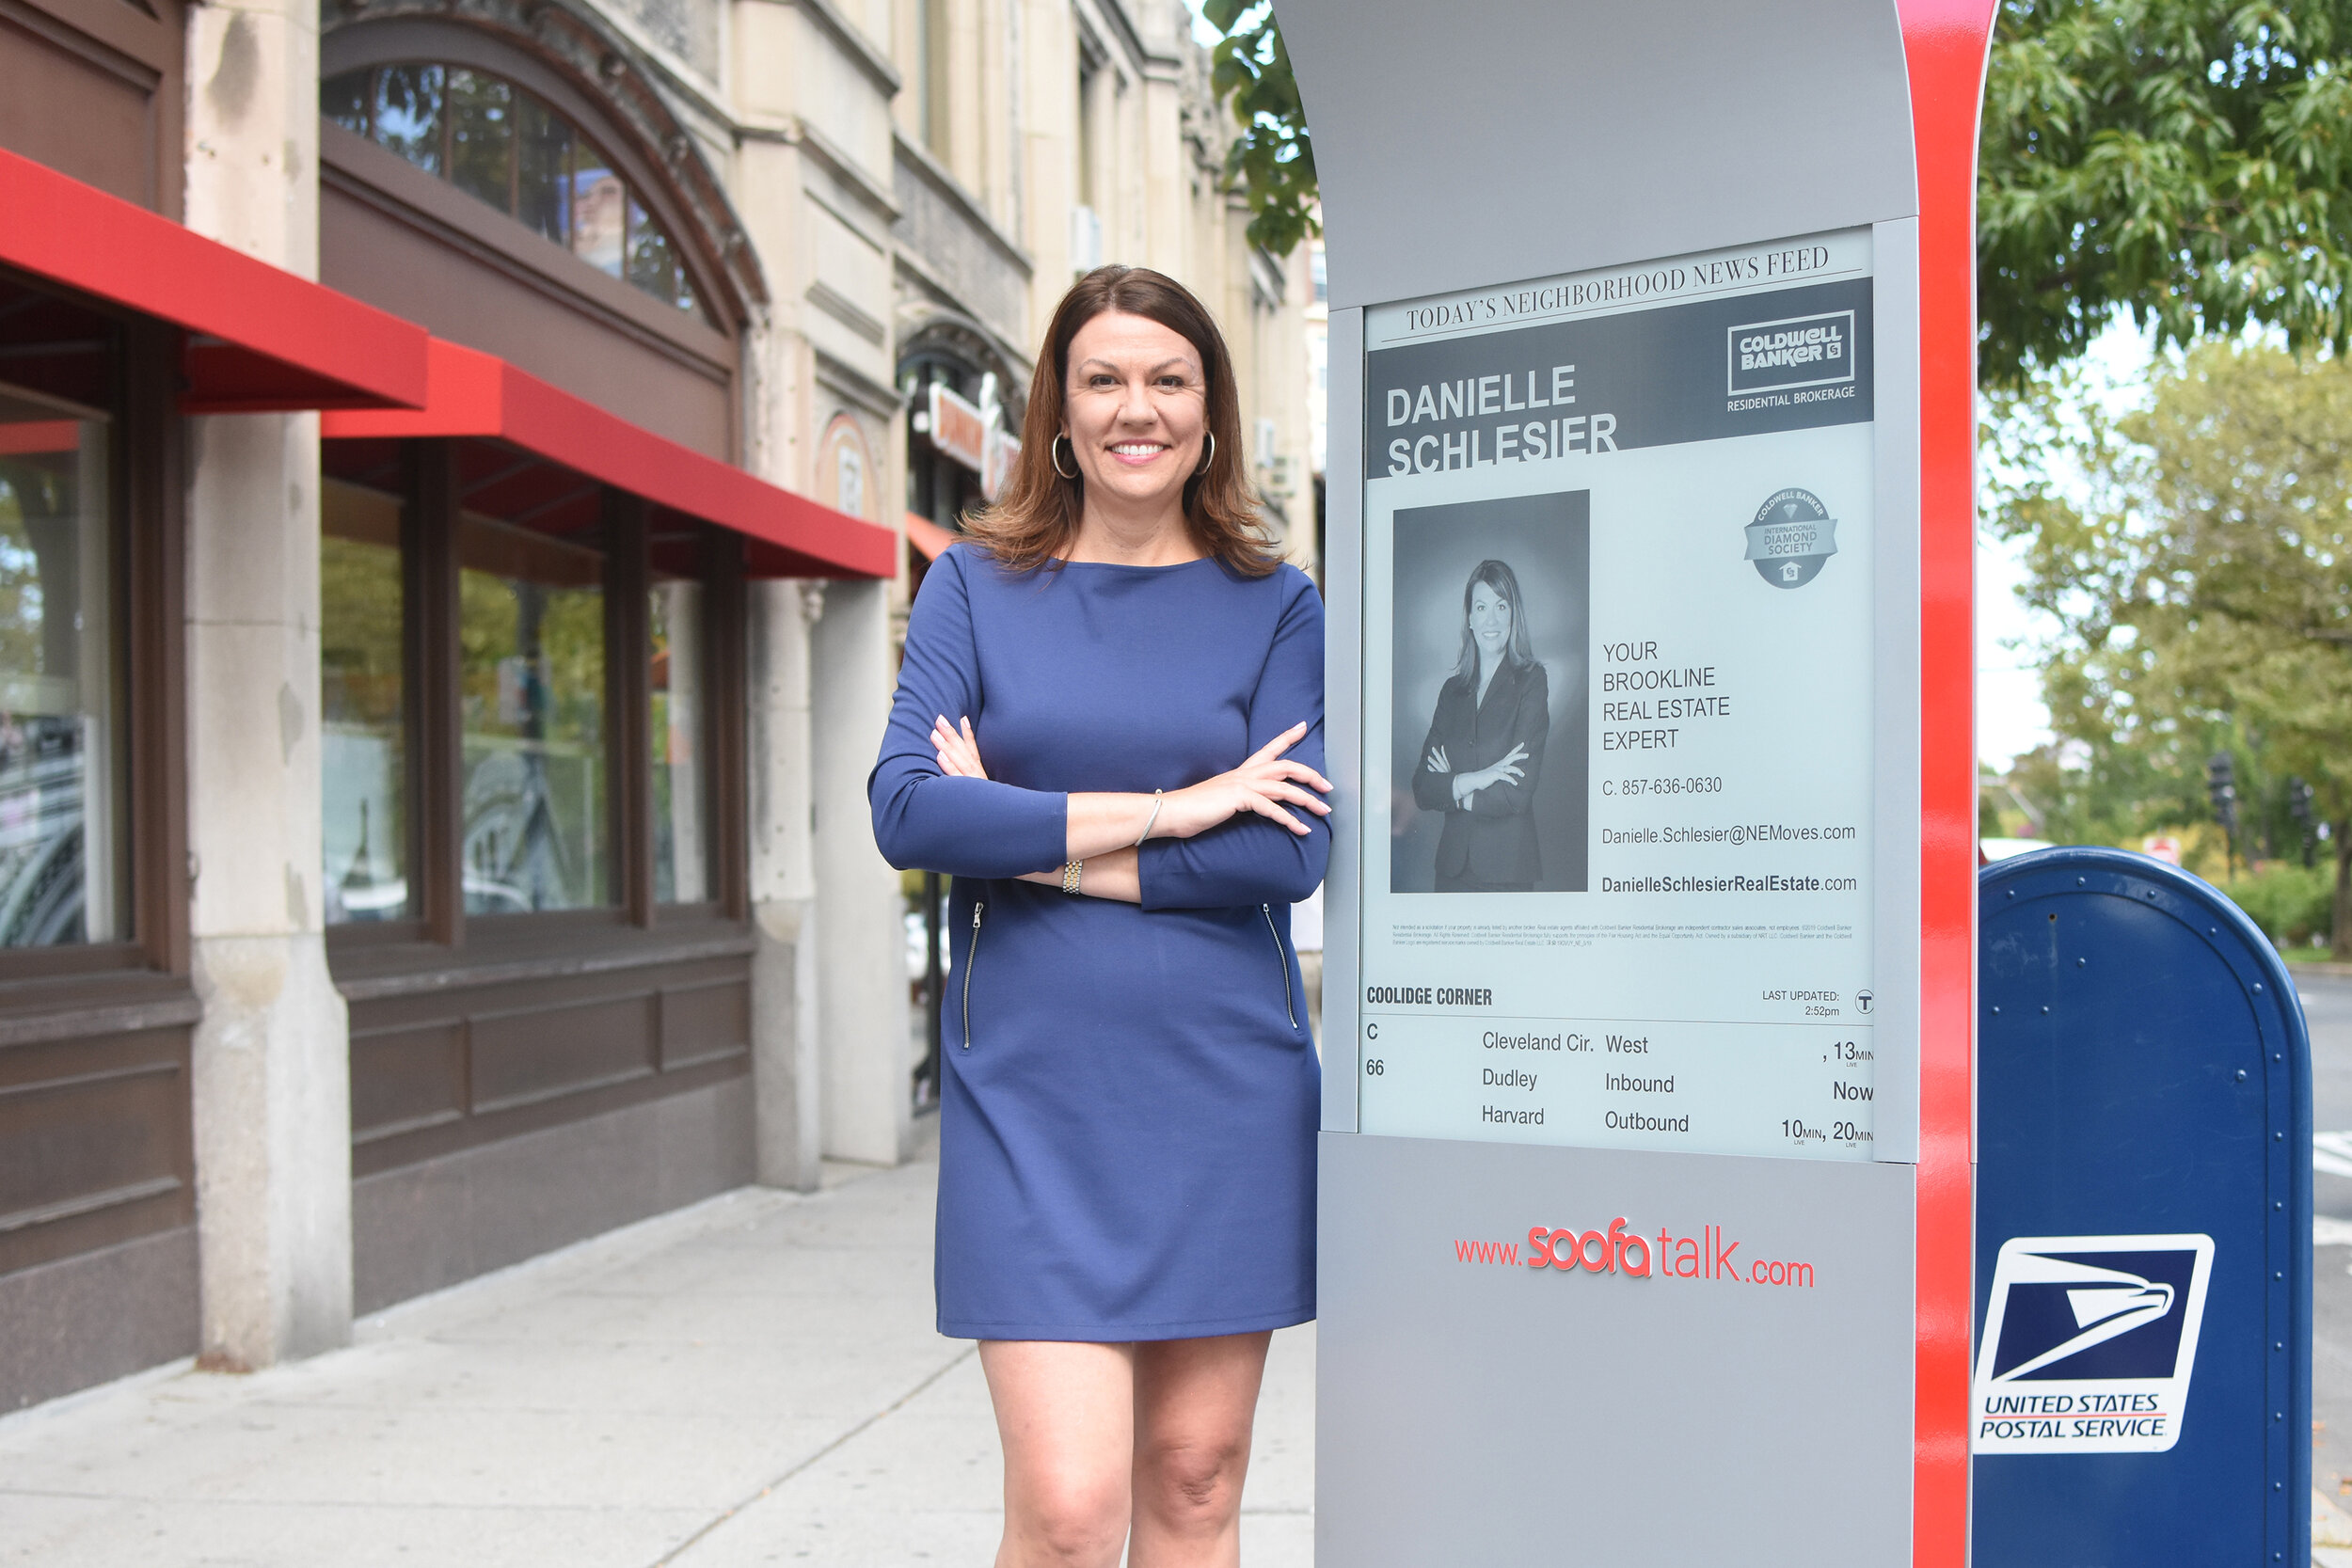 Danielle Schlesier poses with her latest Soofa content!